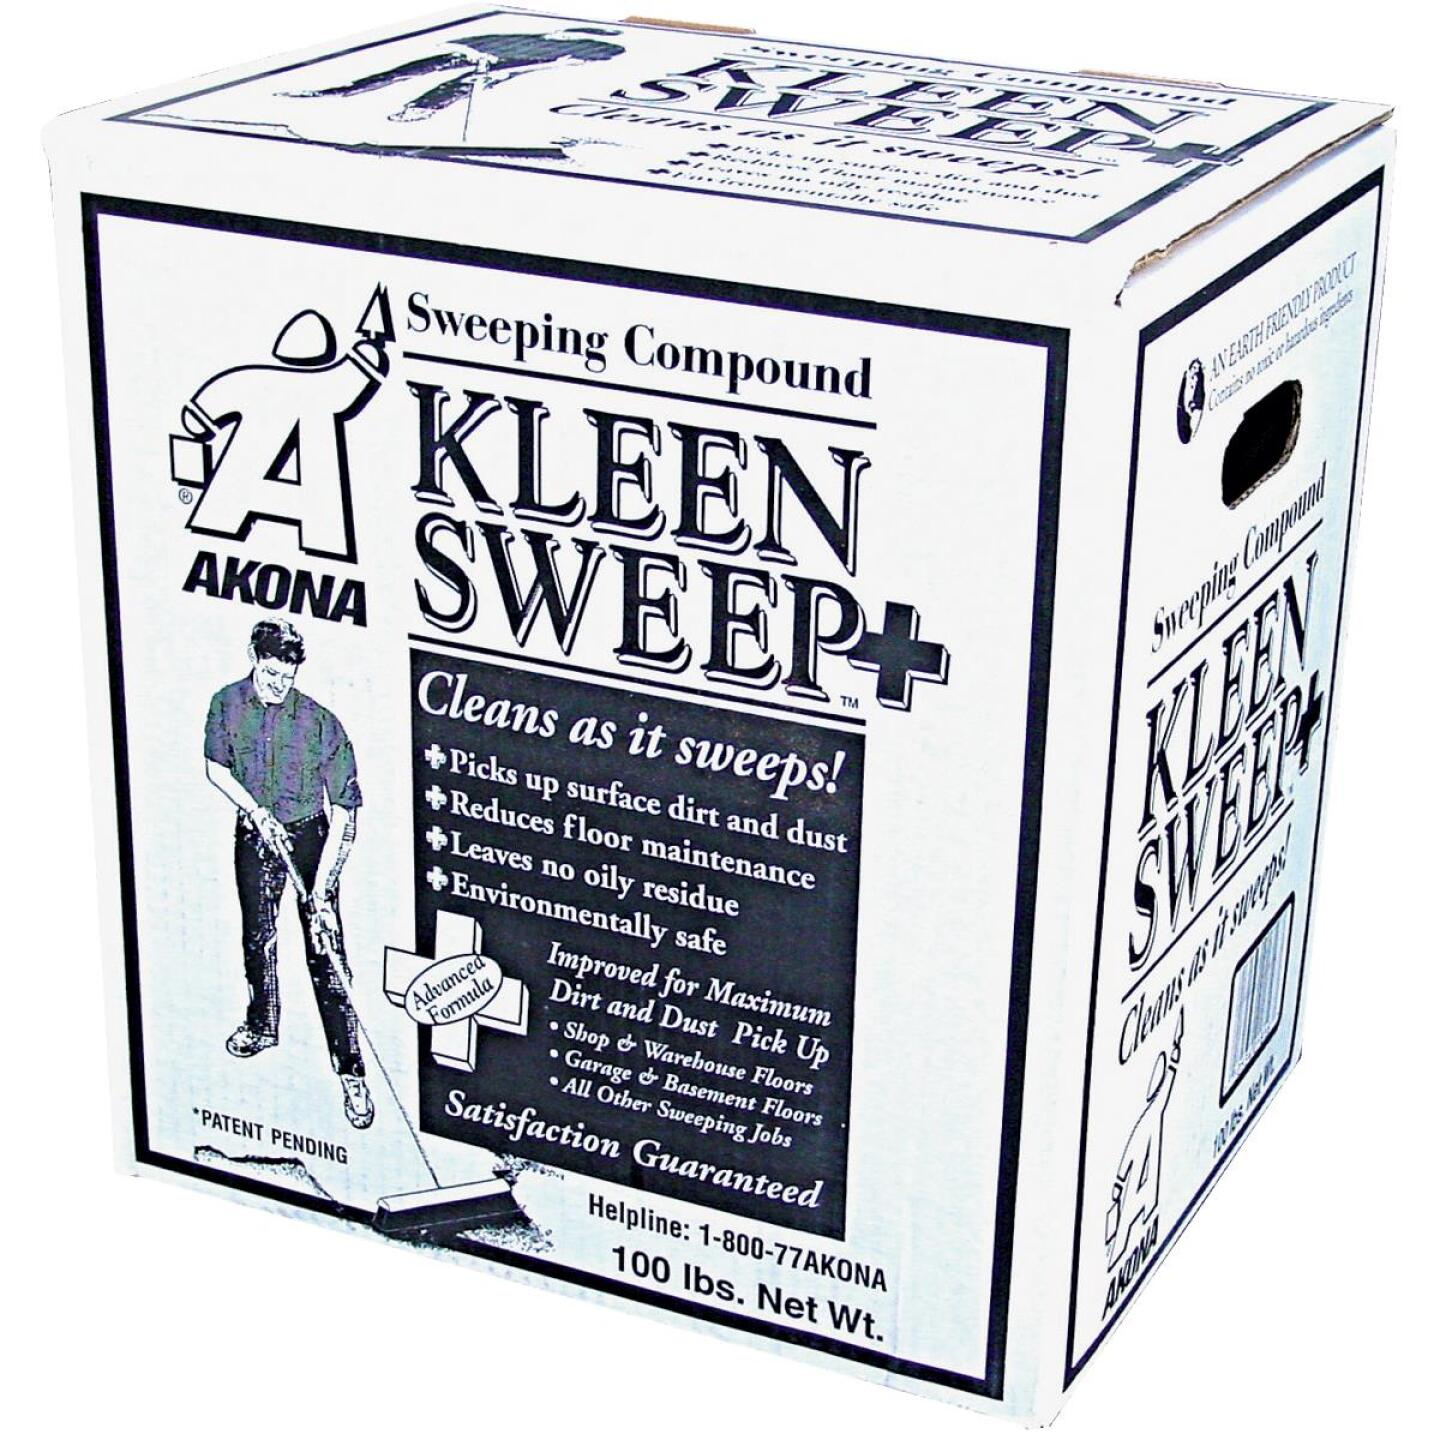 Kleen Sweep 100 Lb. Sweeping Compound Image 1